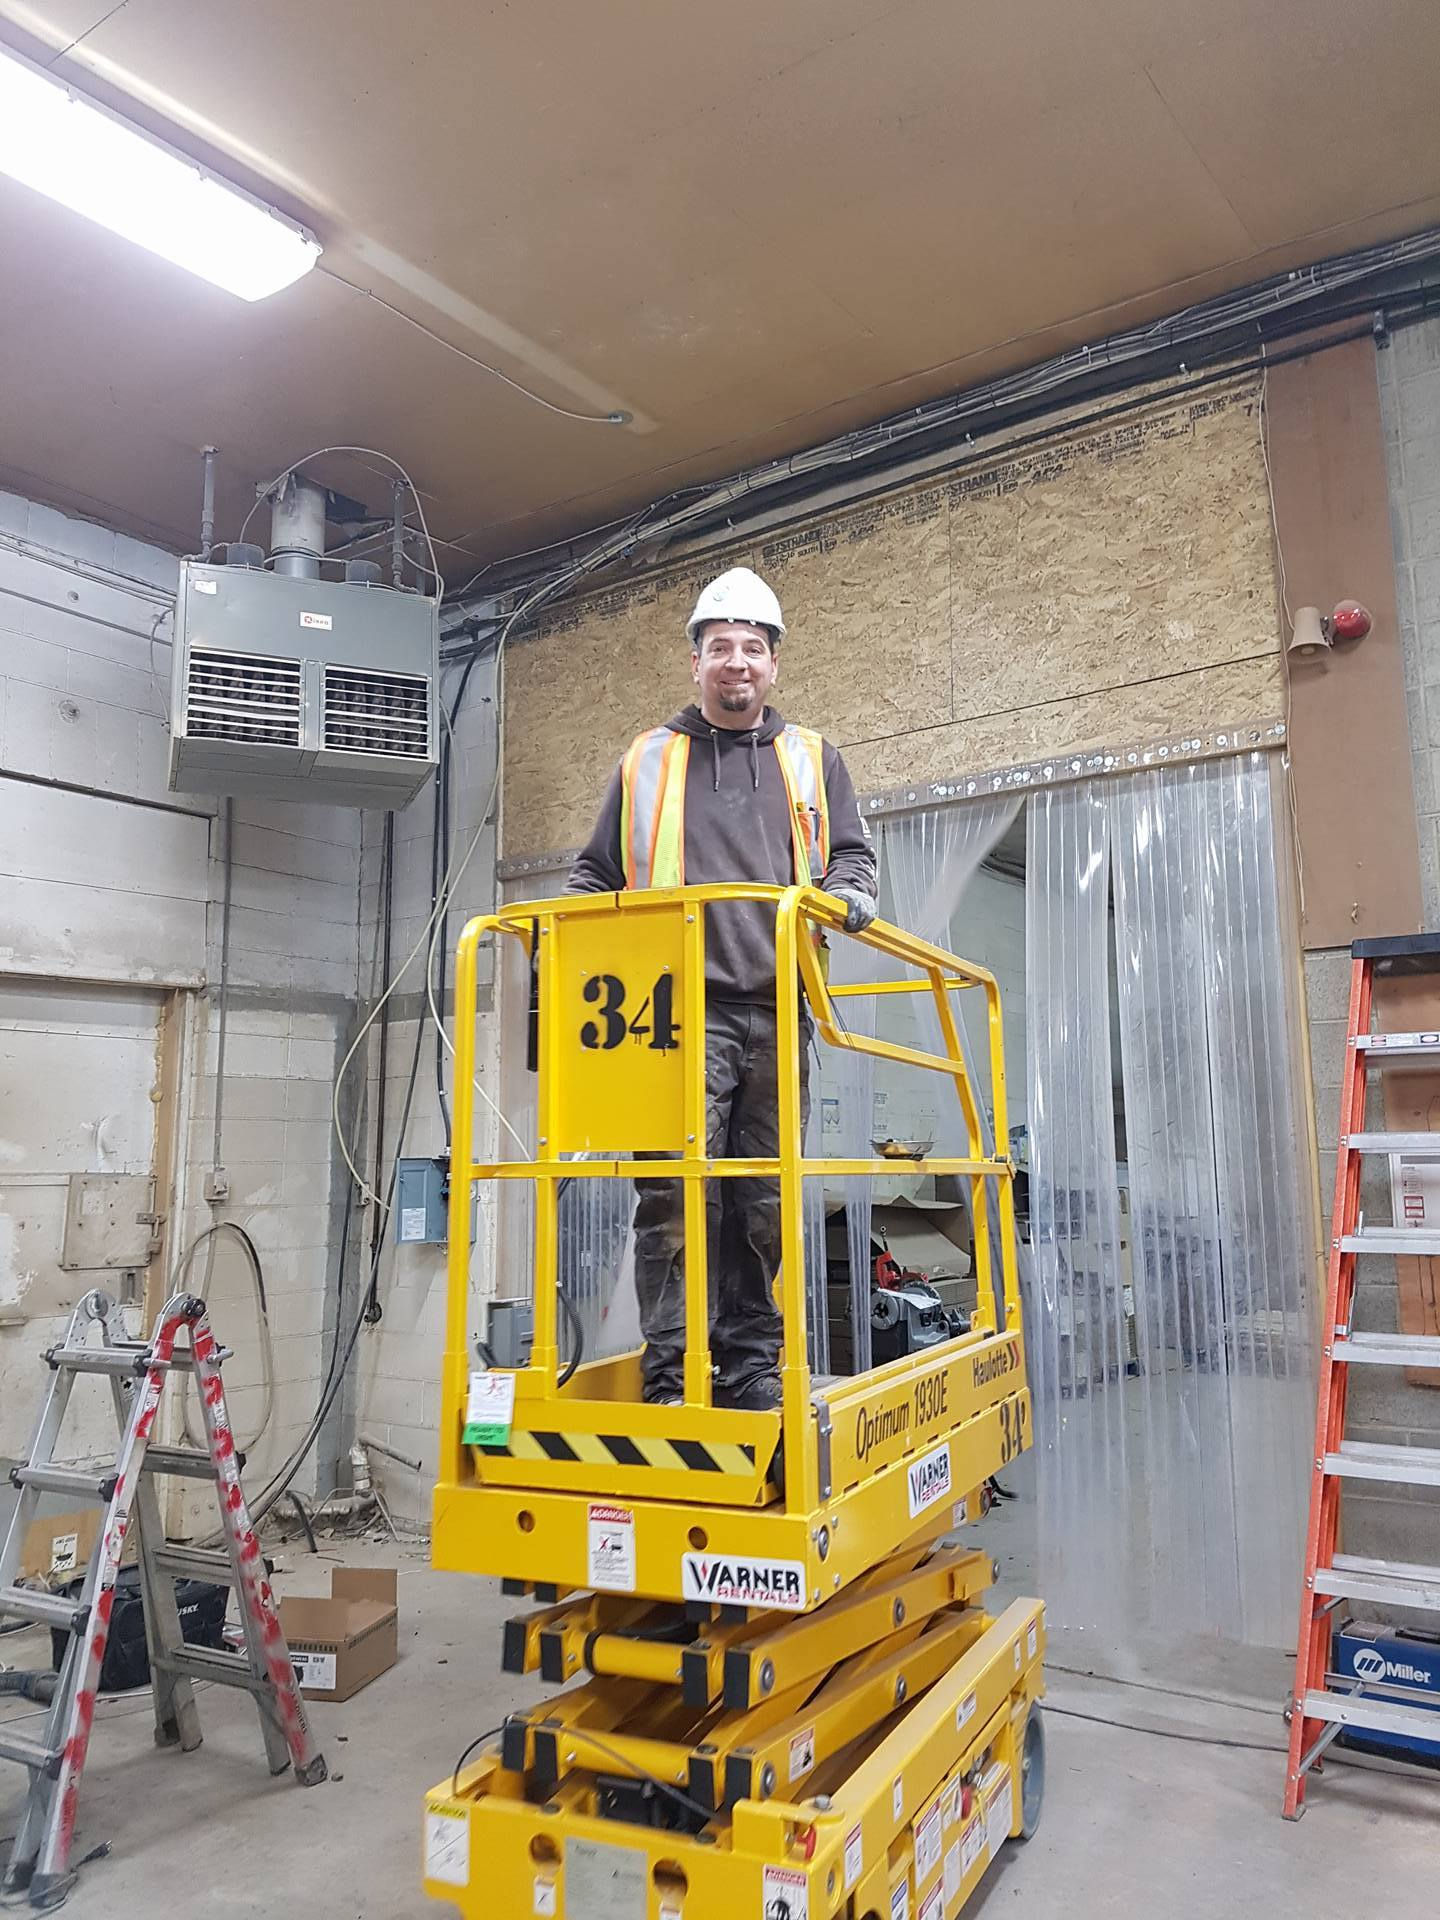 Light Industrial Electrical Work